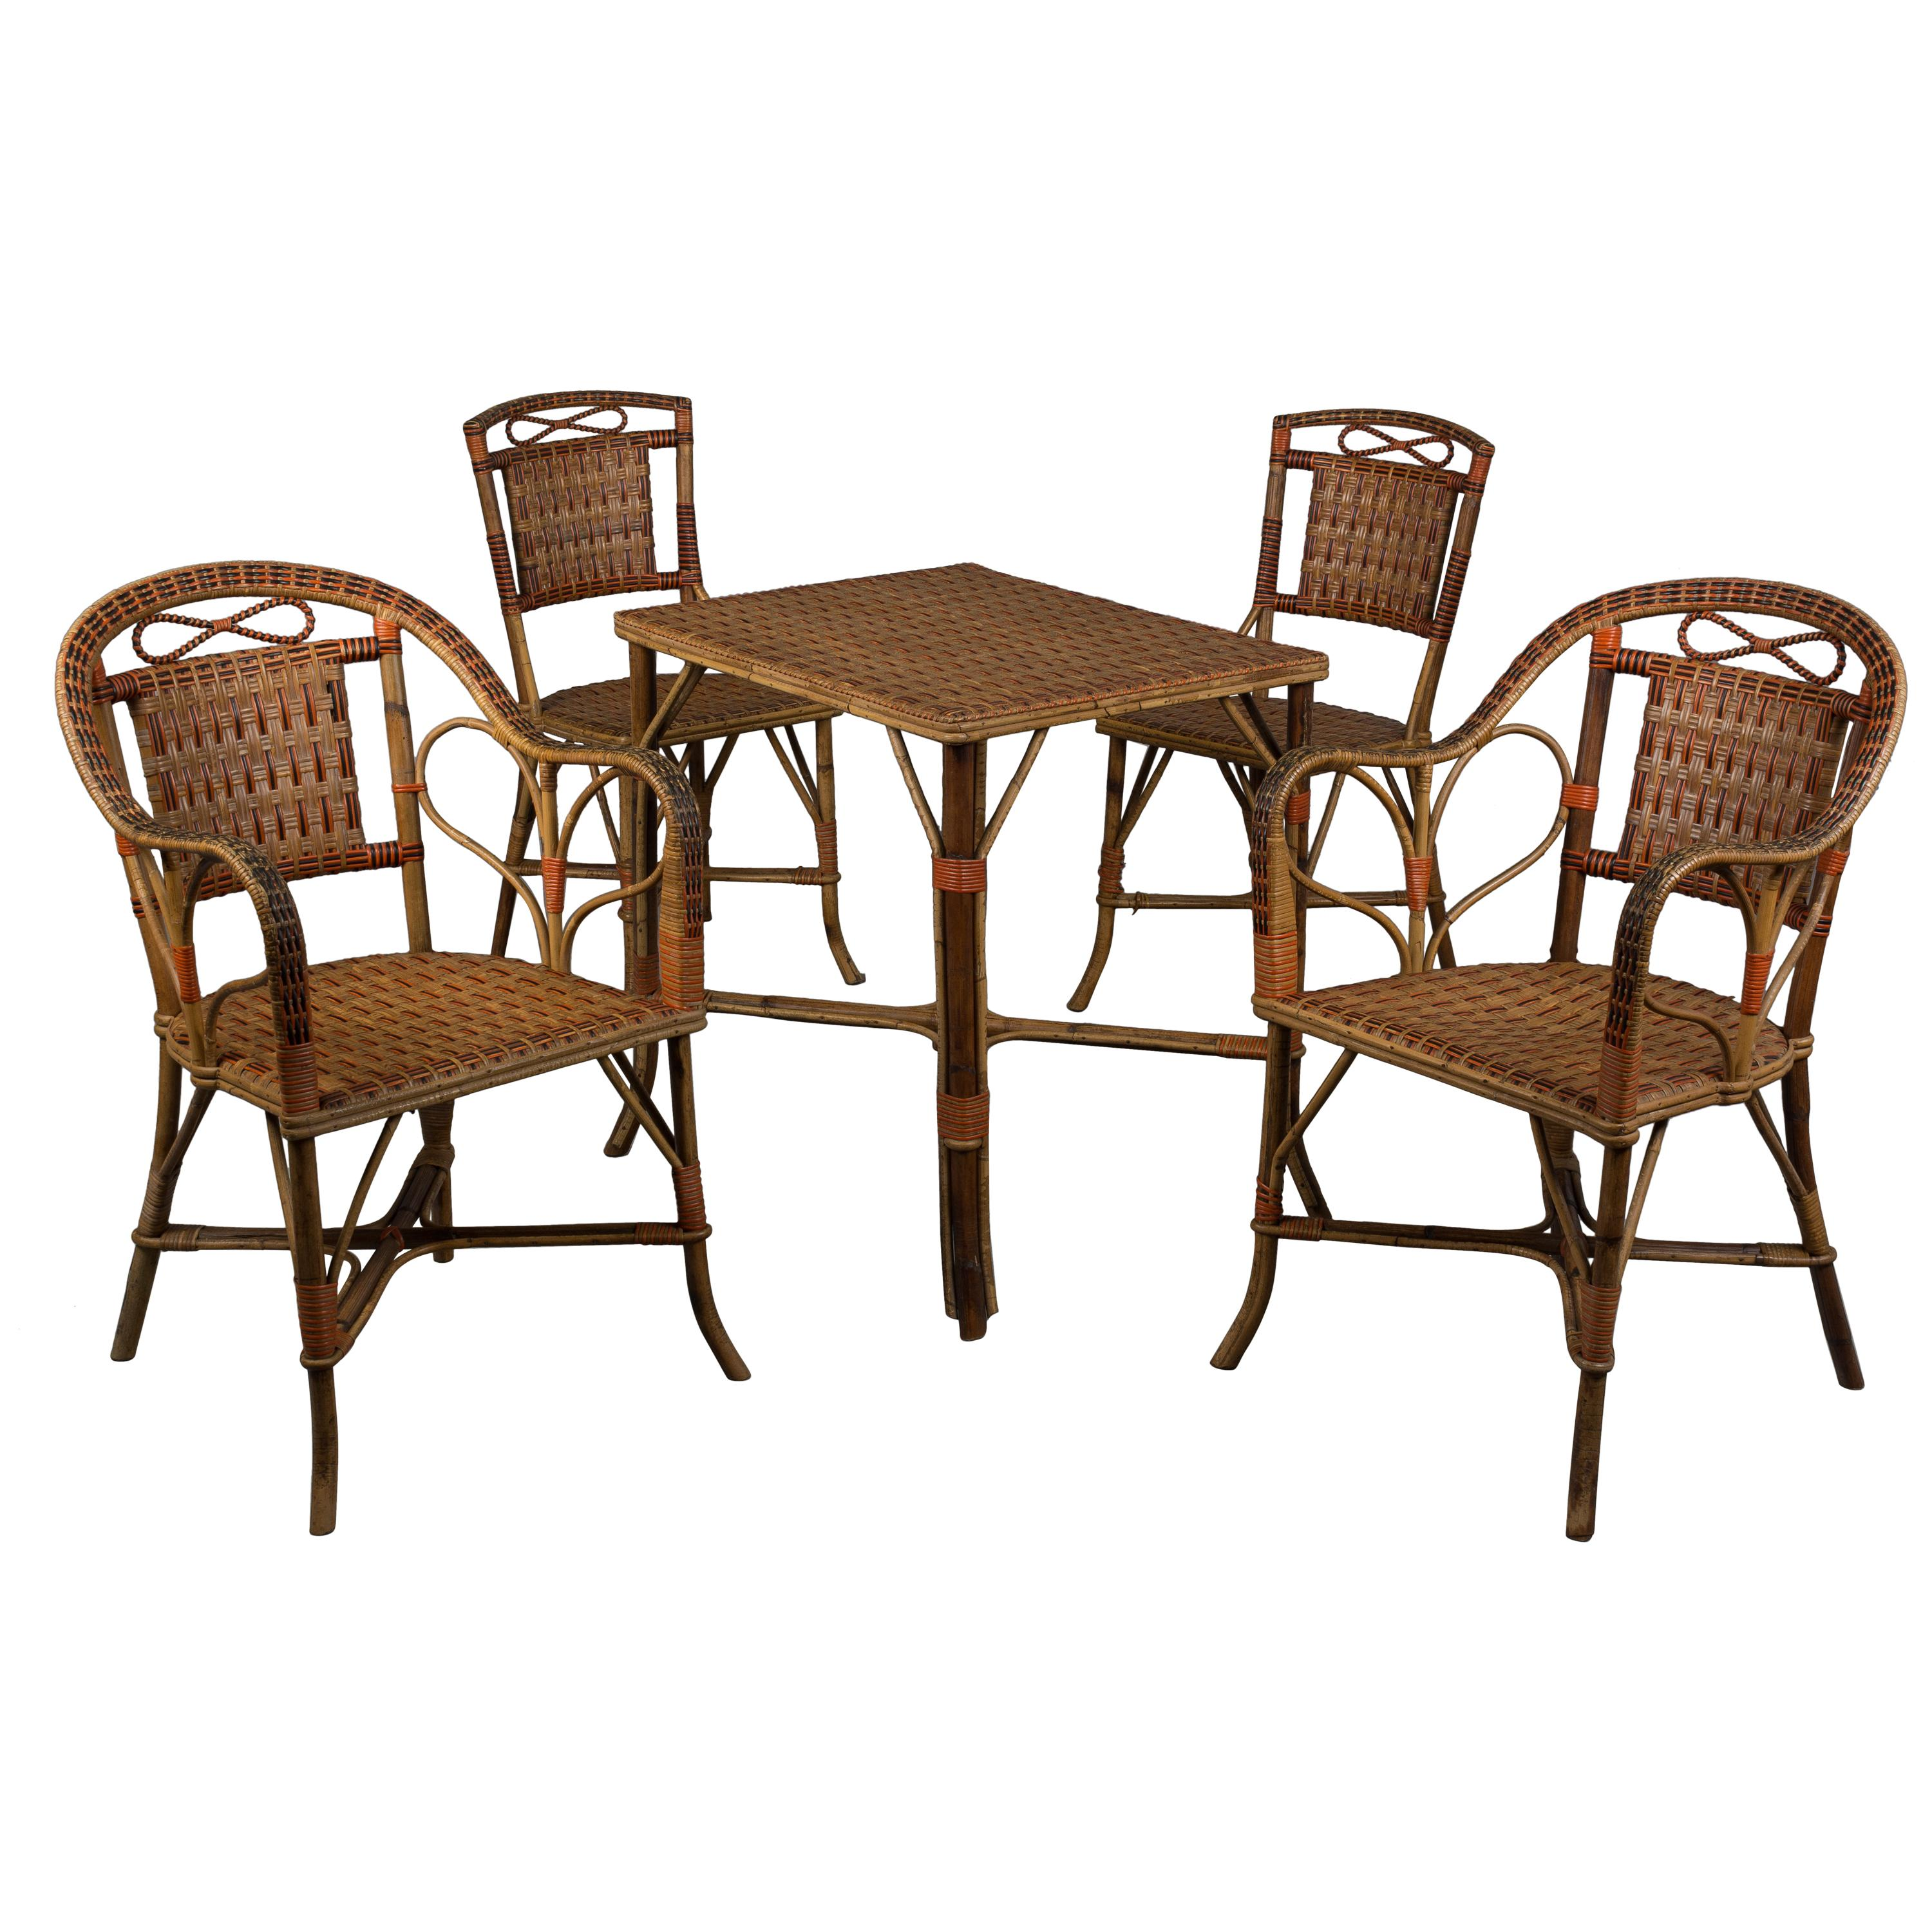 19th Century French Wicker Rattan Dining Set